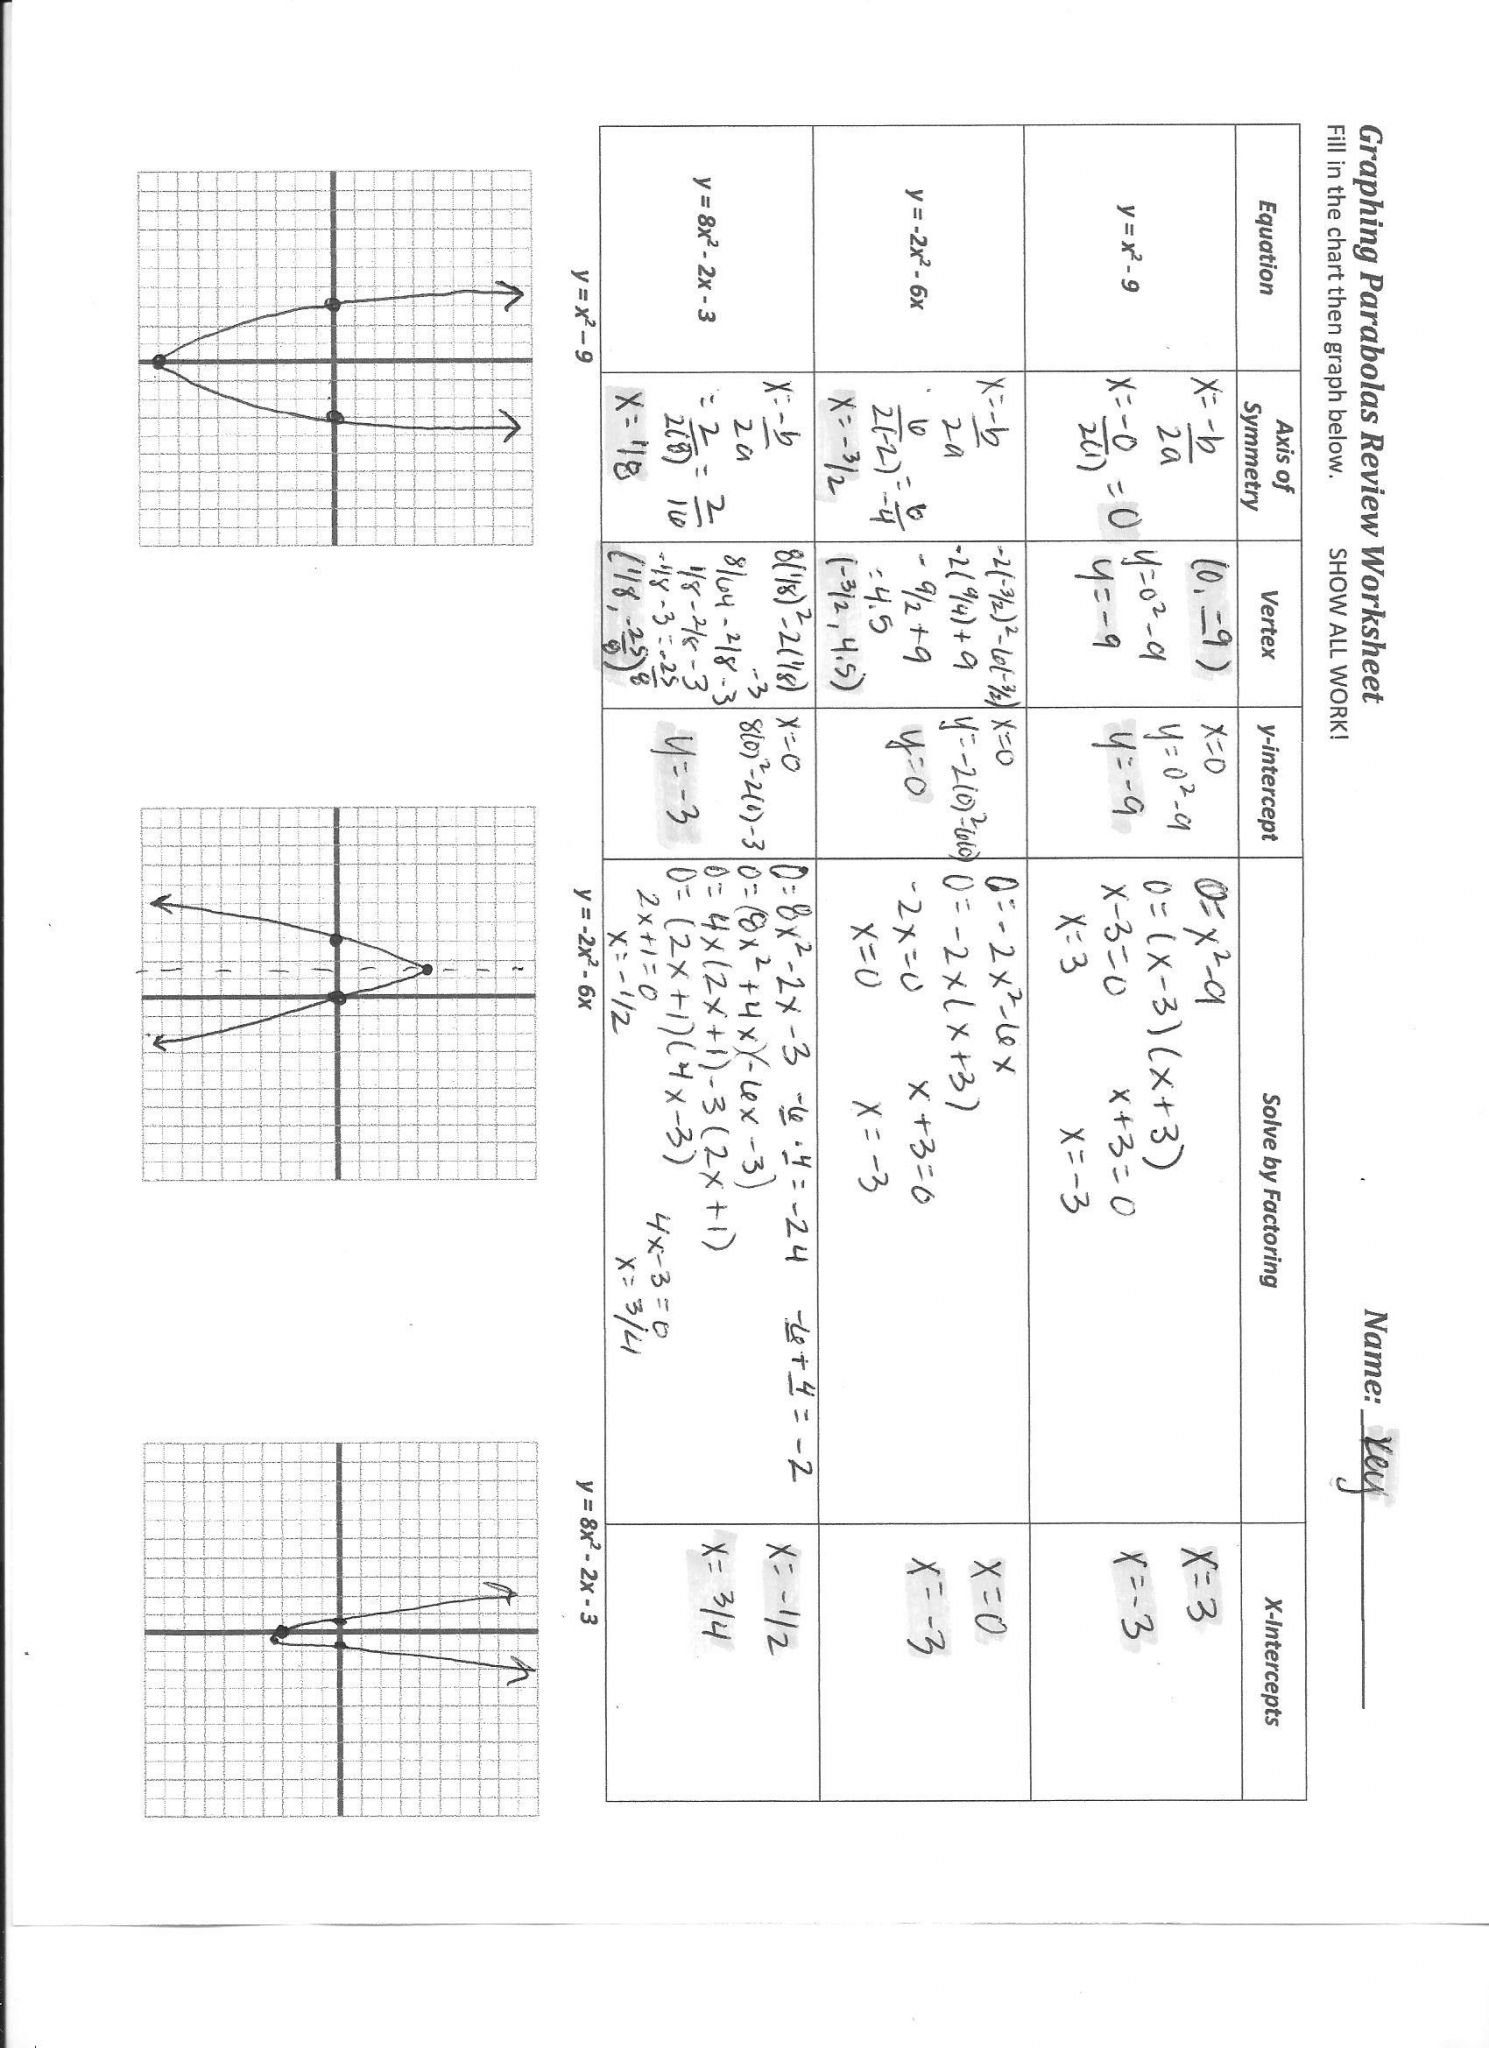 Graphing Rational Functions Worksheet Answers  Briefencounters Also Graphing Rational Functions Worksheet Answers